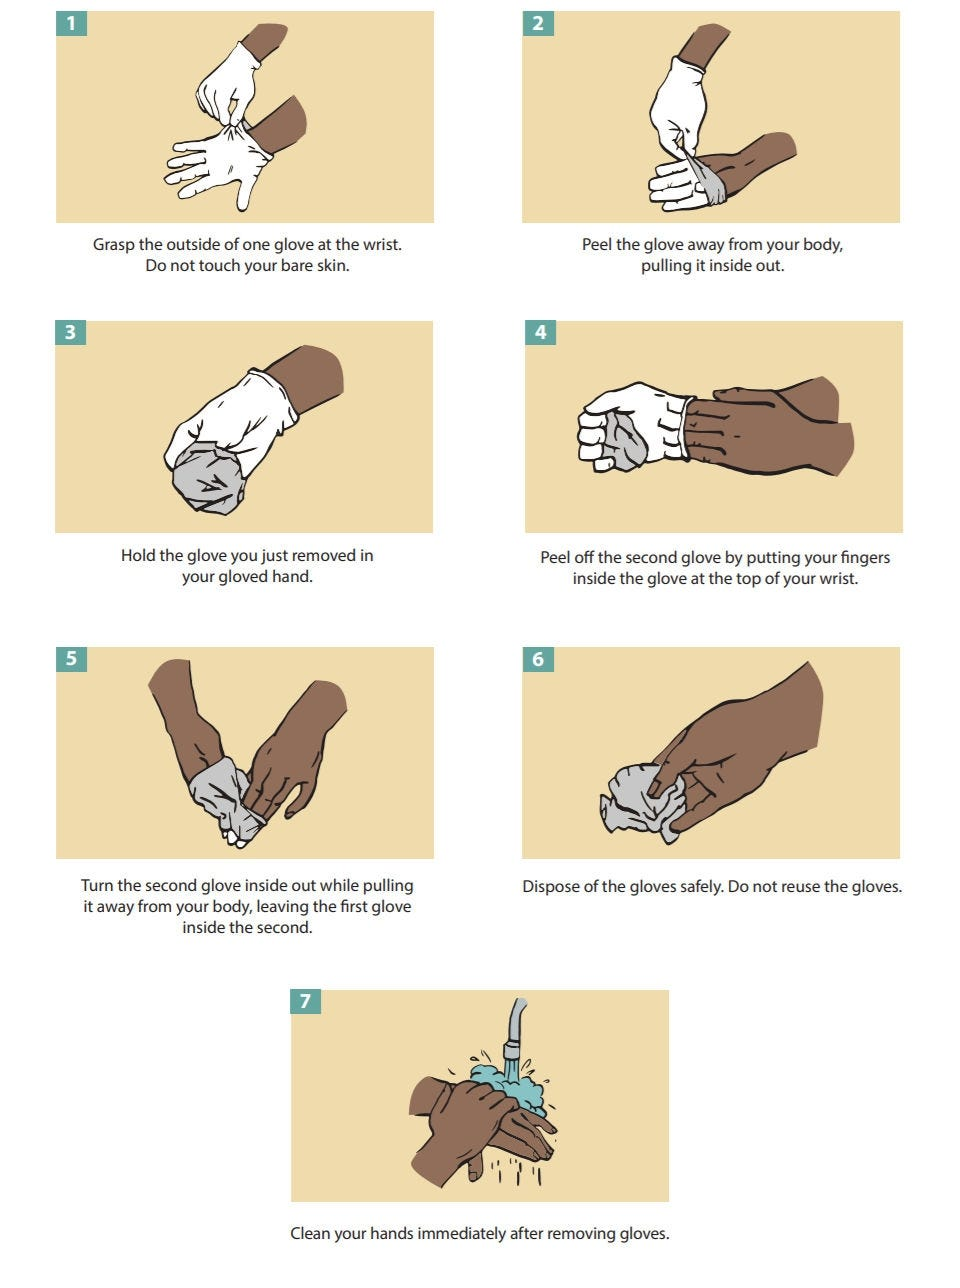 How to remove your gloves